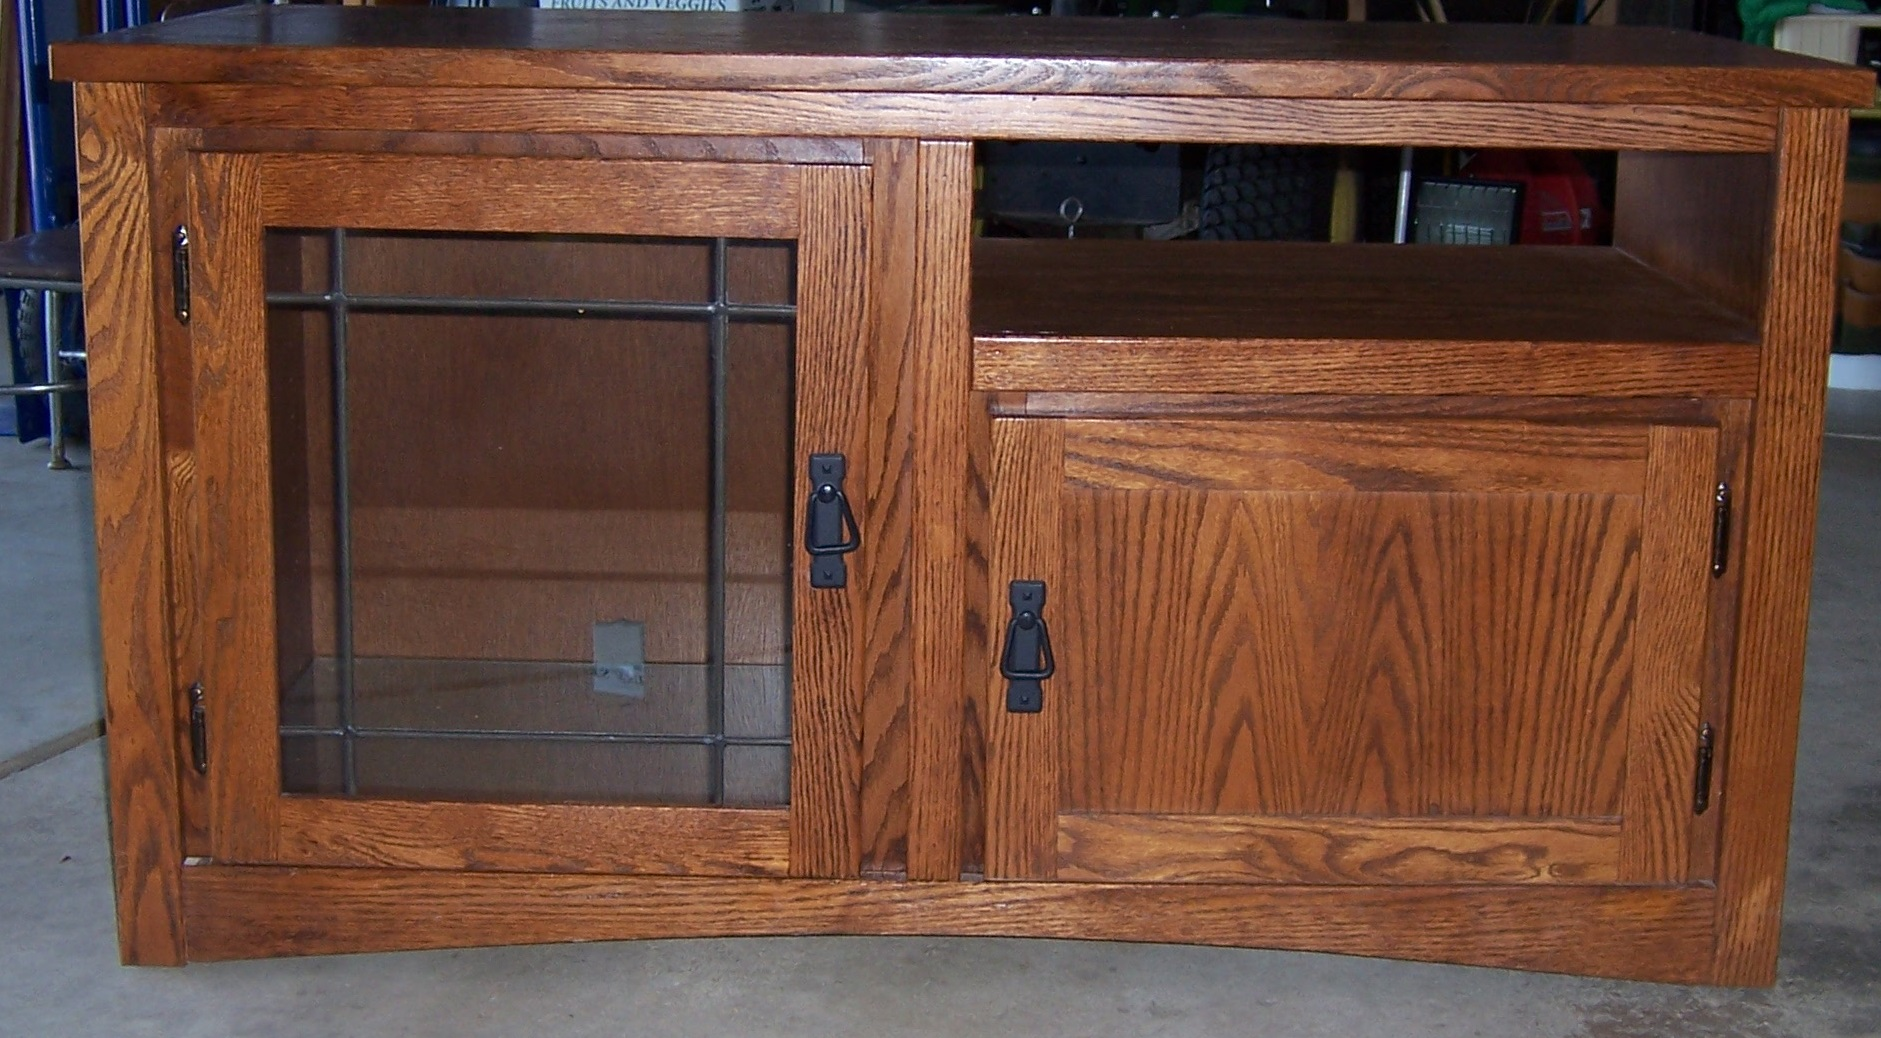 Cut Down That Old Entertainment Center To Make Room For Your New Flat Screen